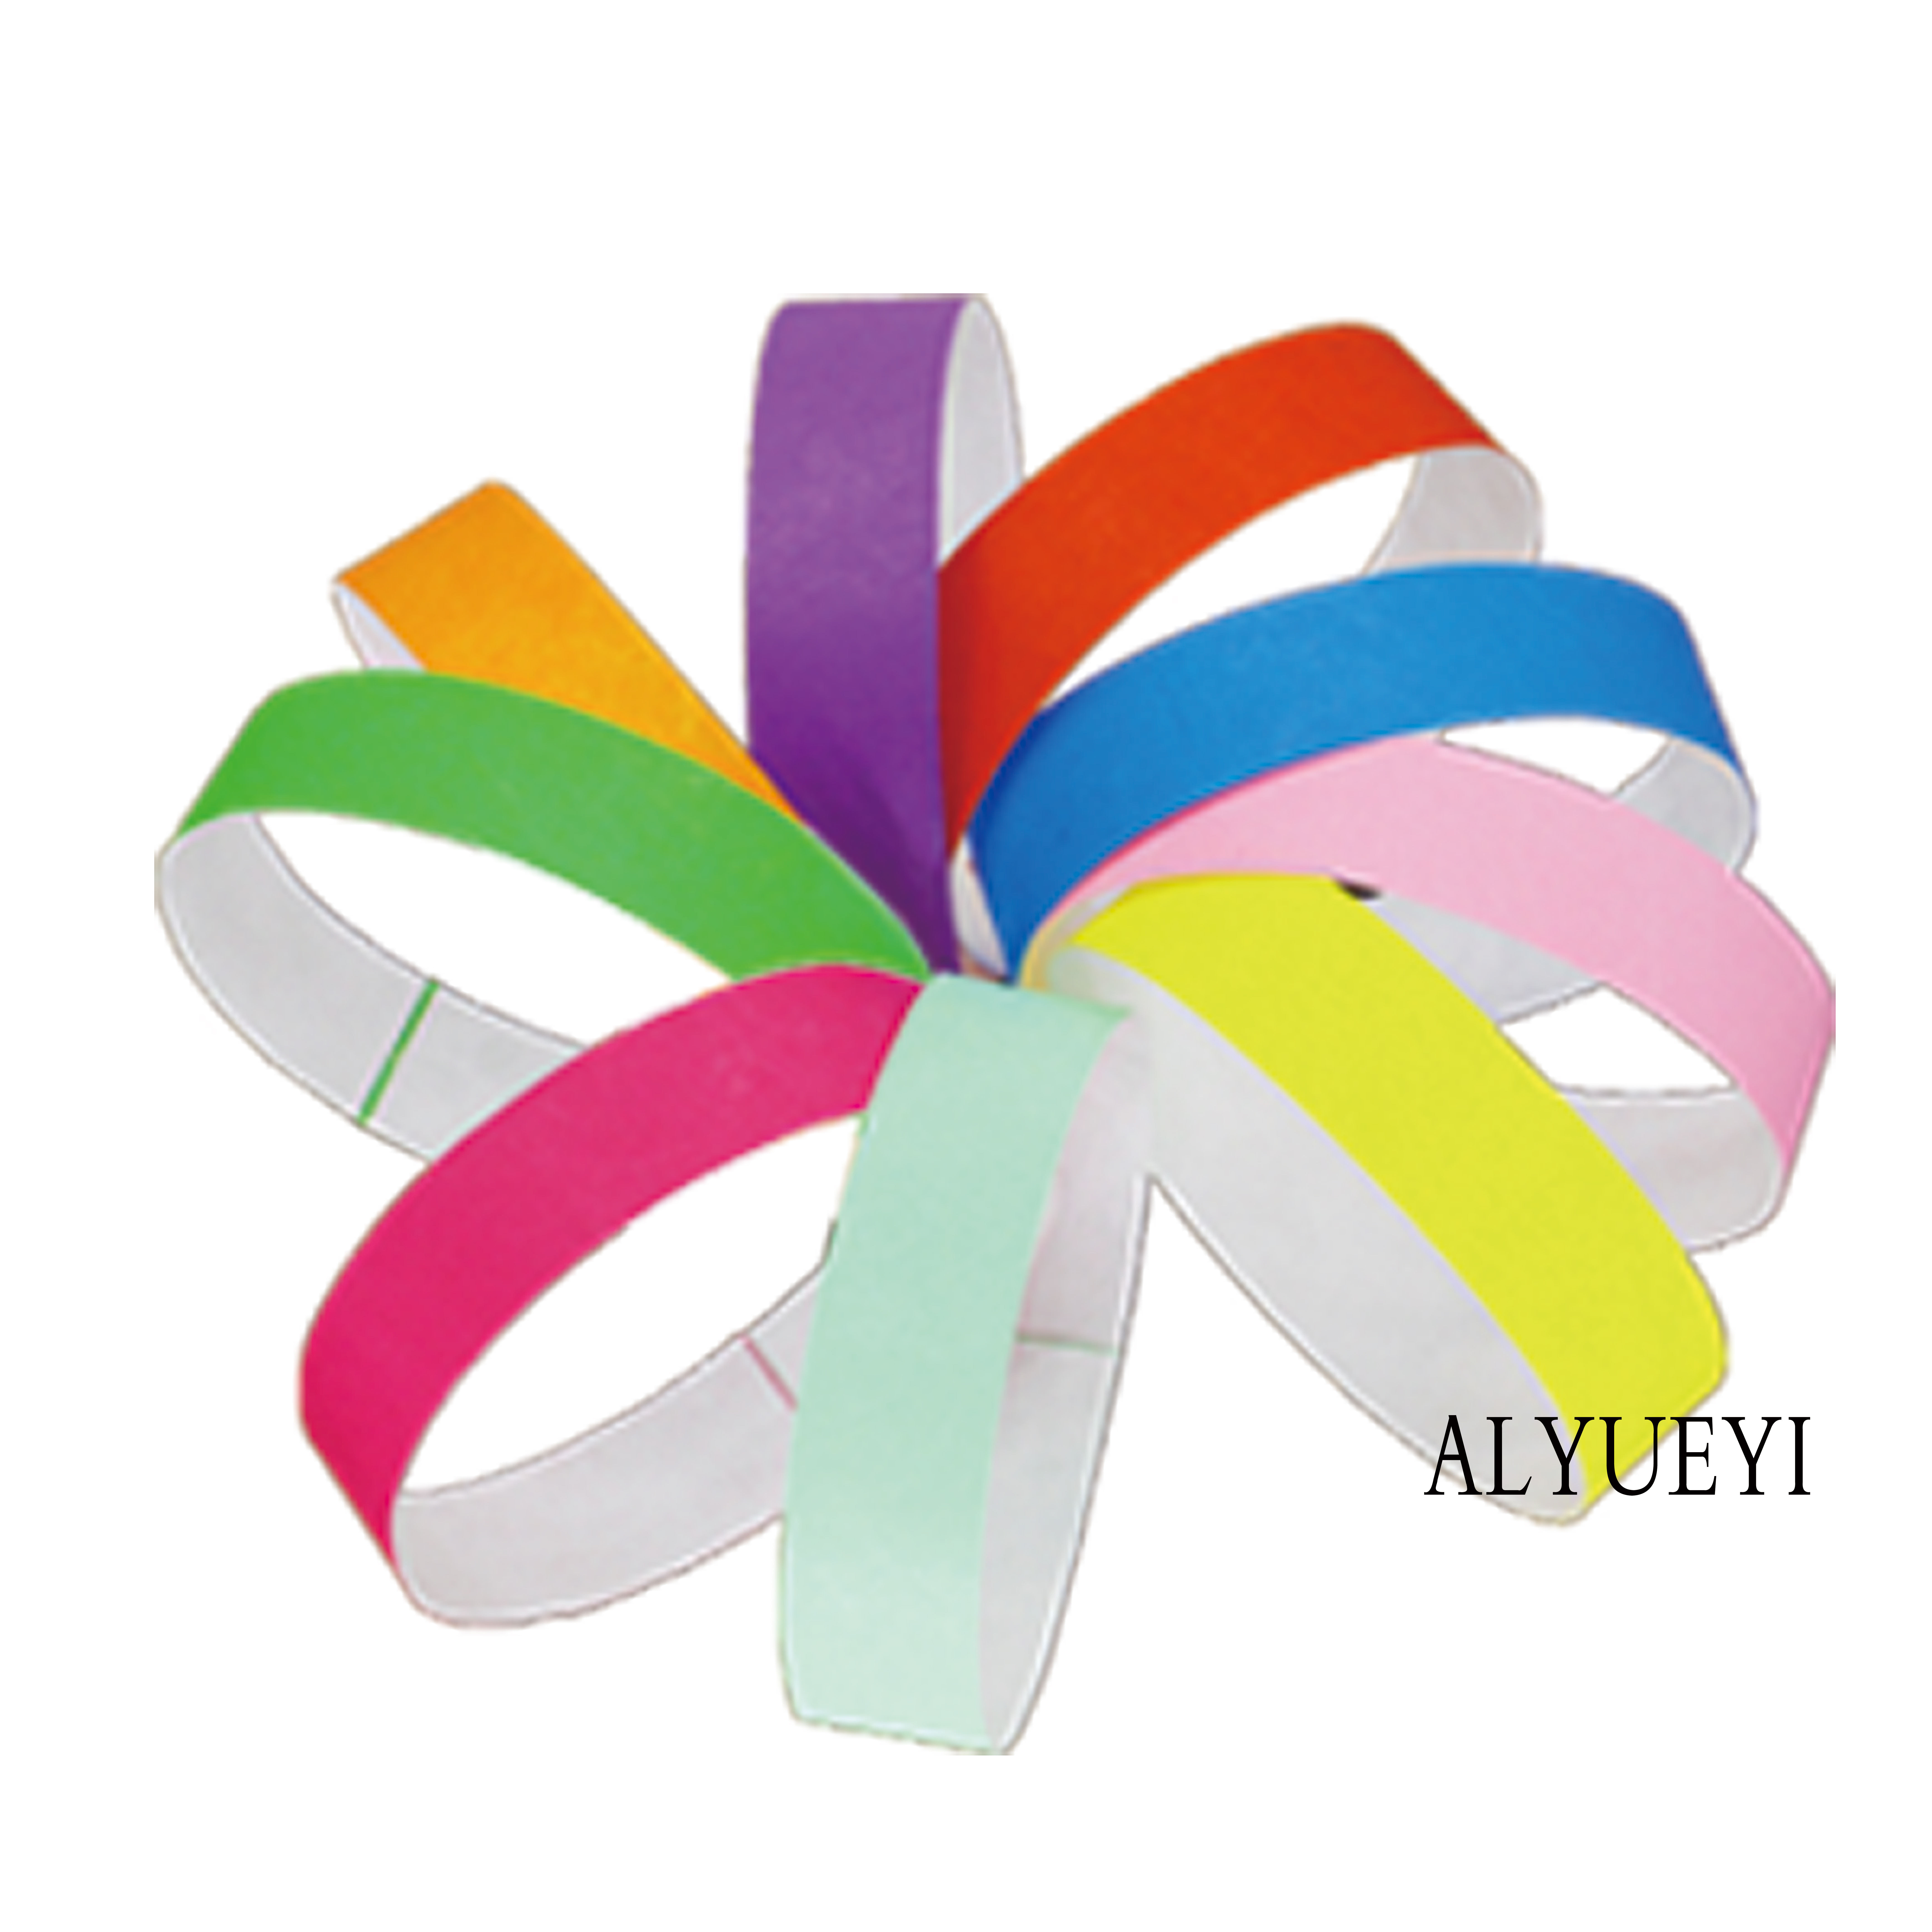 YUEYI Custom Romantic Wedding favor Tyvek Paper Wristbands for guests wristband paper Bracelet for tyvek wristbands paper